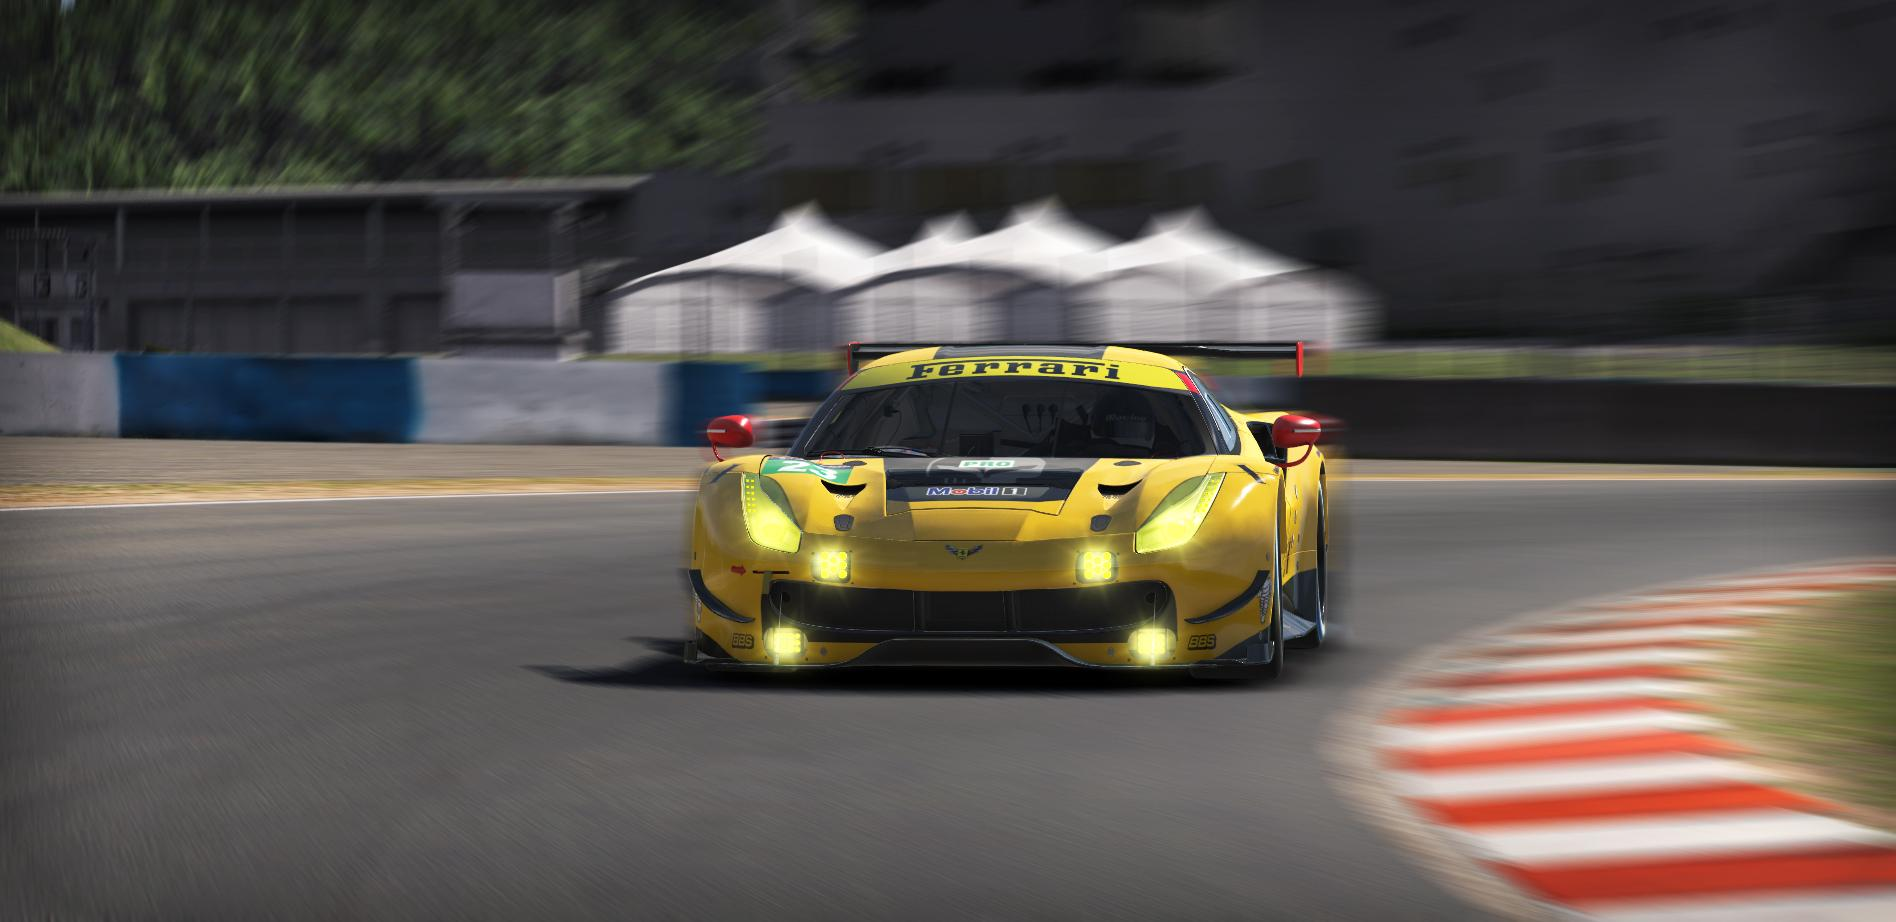 Preview of Corvette C7R by Thomas Engelns